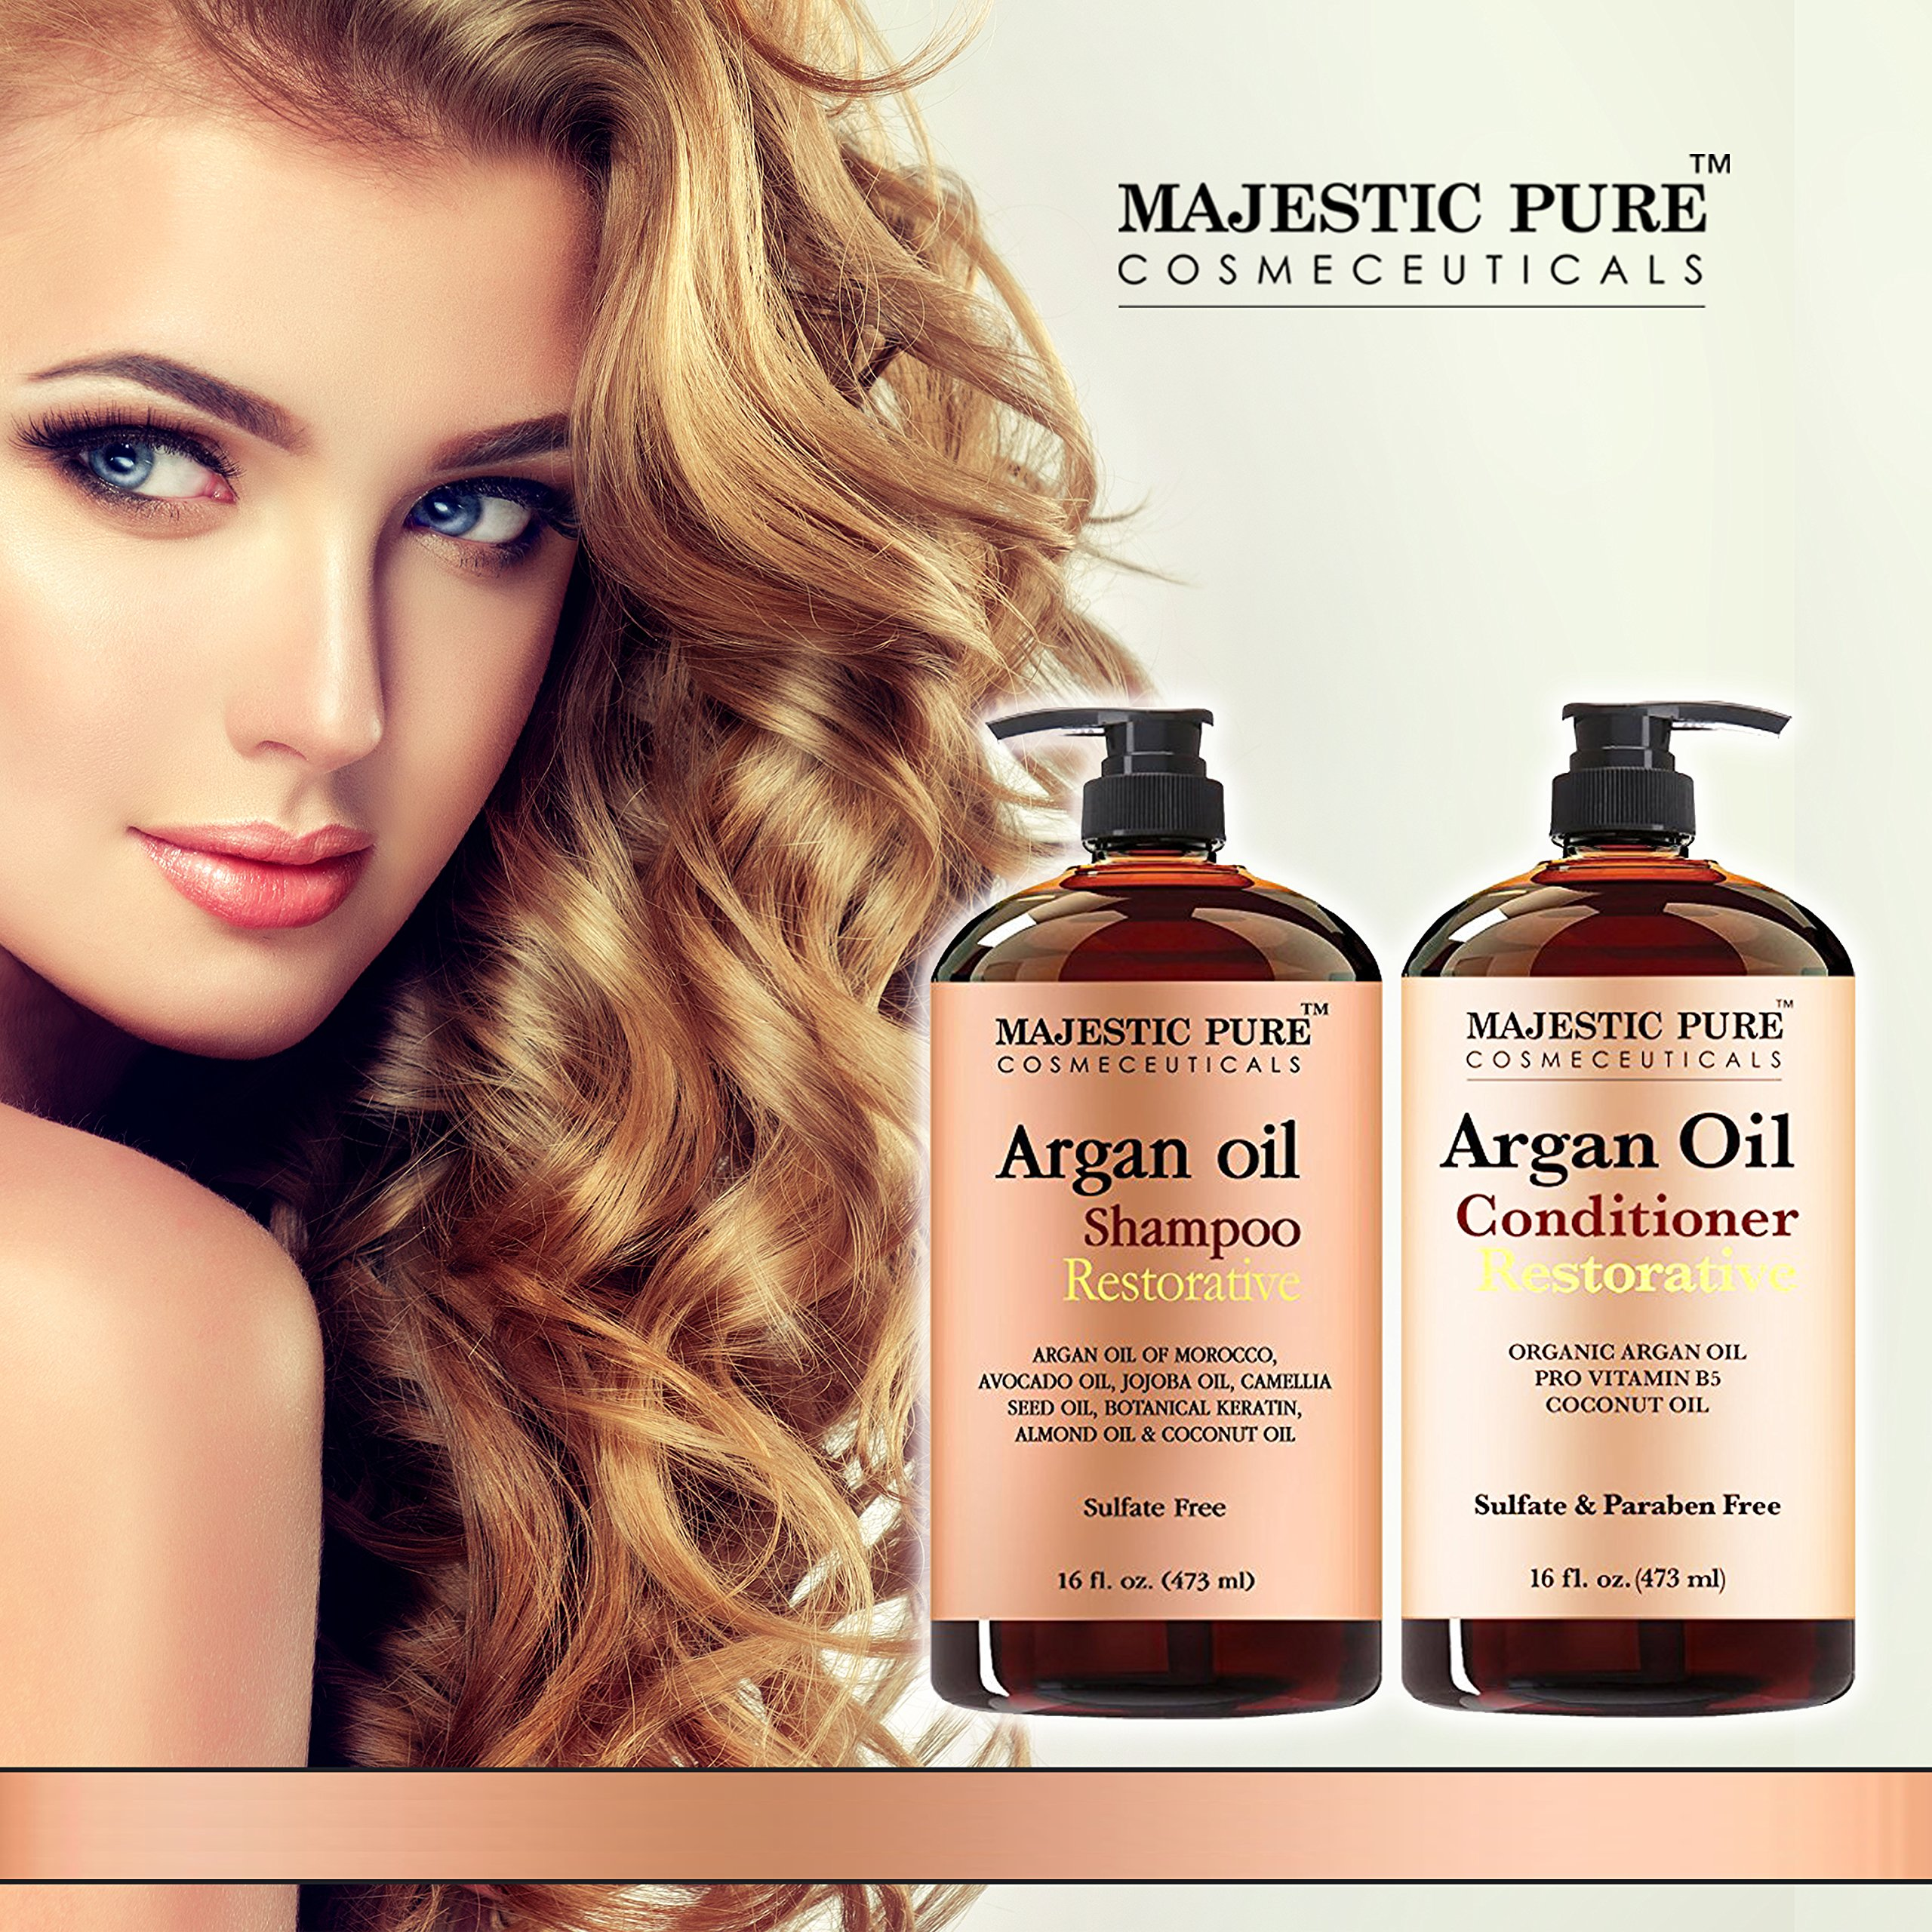 Argan Oil Shampoo and Conditioner, from Majestic Pure, Sulfate Free, Vitamin Enriched, Volumizing & Gentle Hair Restoration Formula for Daily Use, For Men and Women, 16 fl oz each … by Majestic Pure (Image #2)